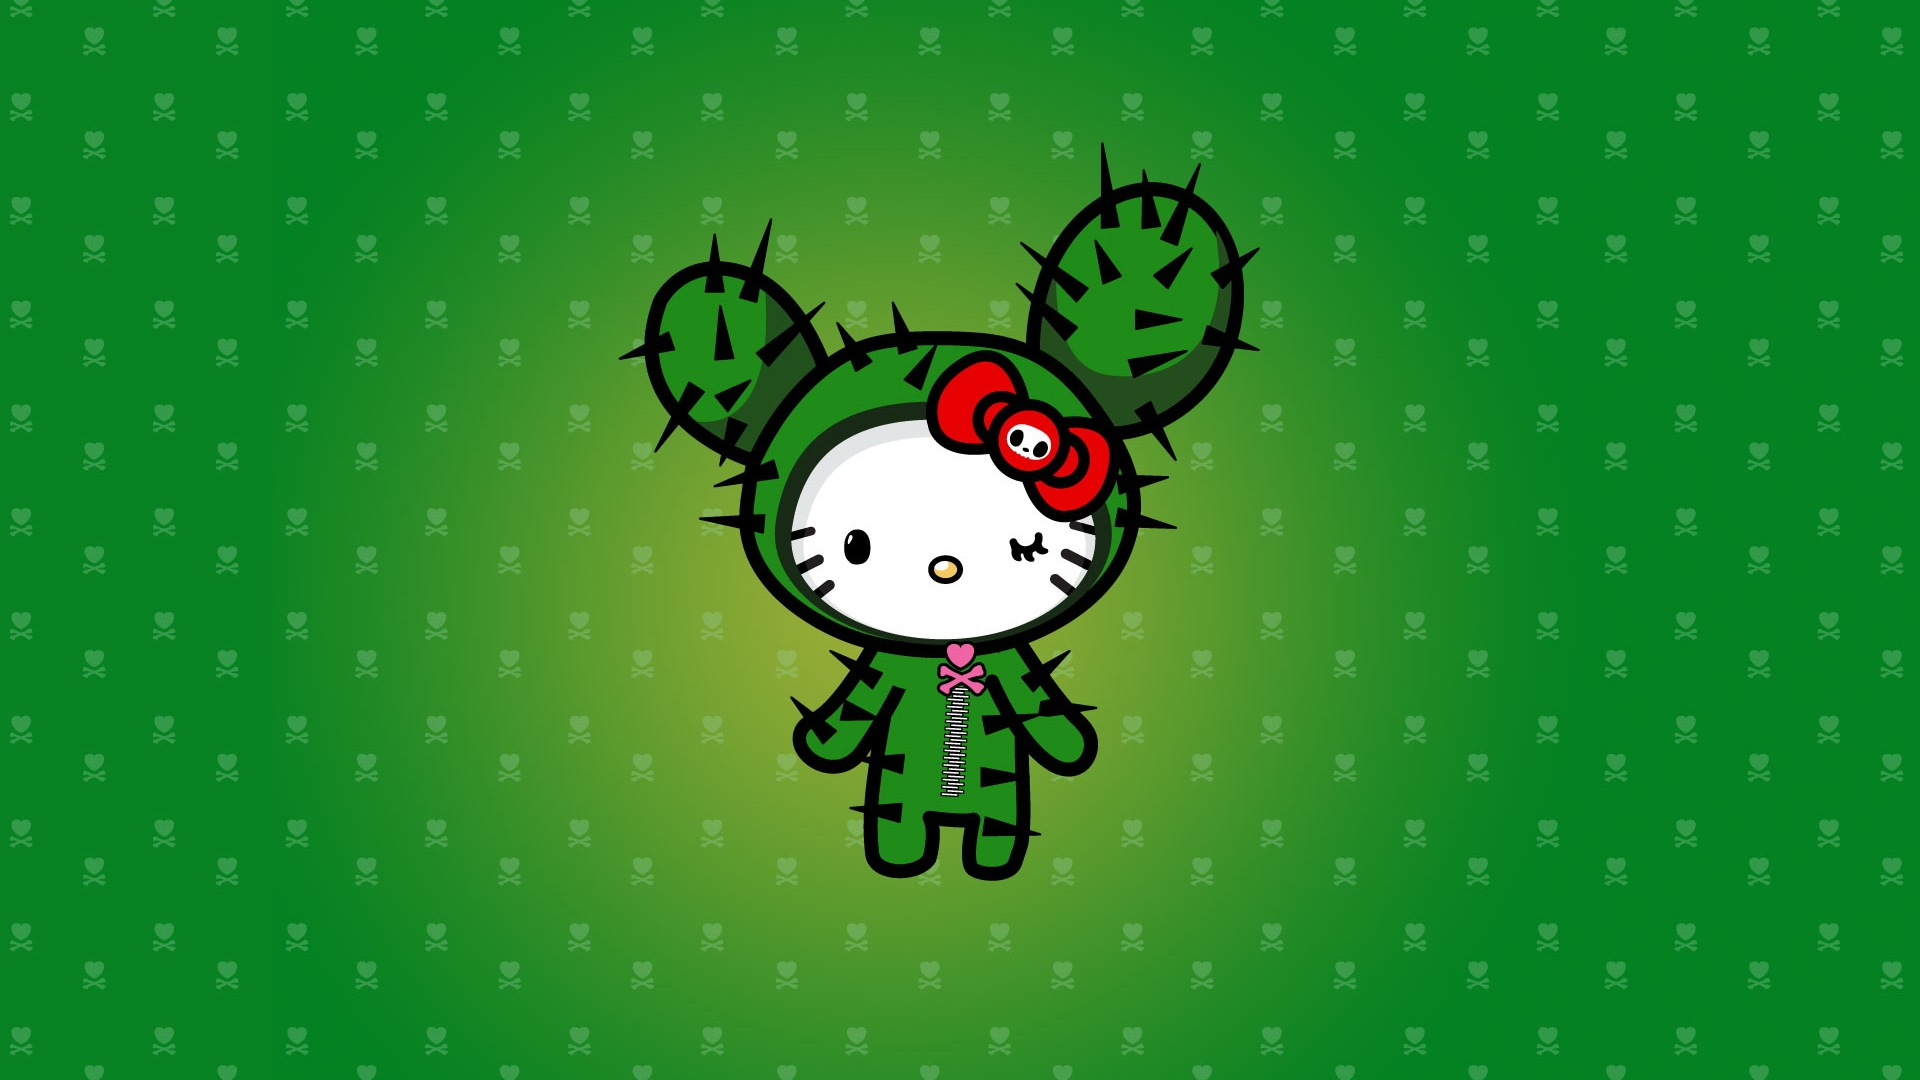 Fondos-HD-de-hello-kitty-Fondosdepantalla.top (20)